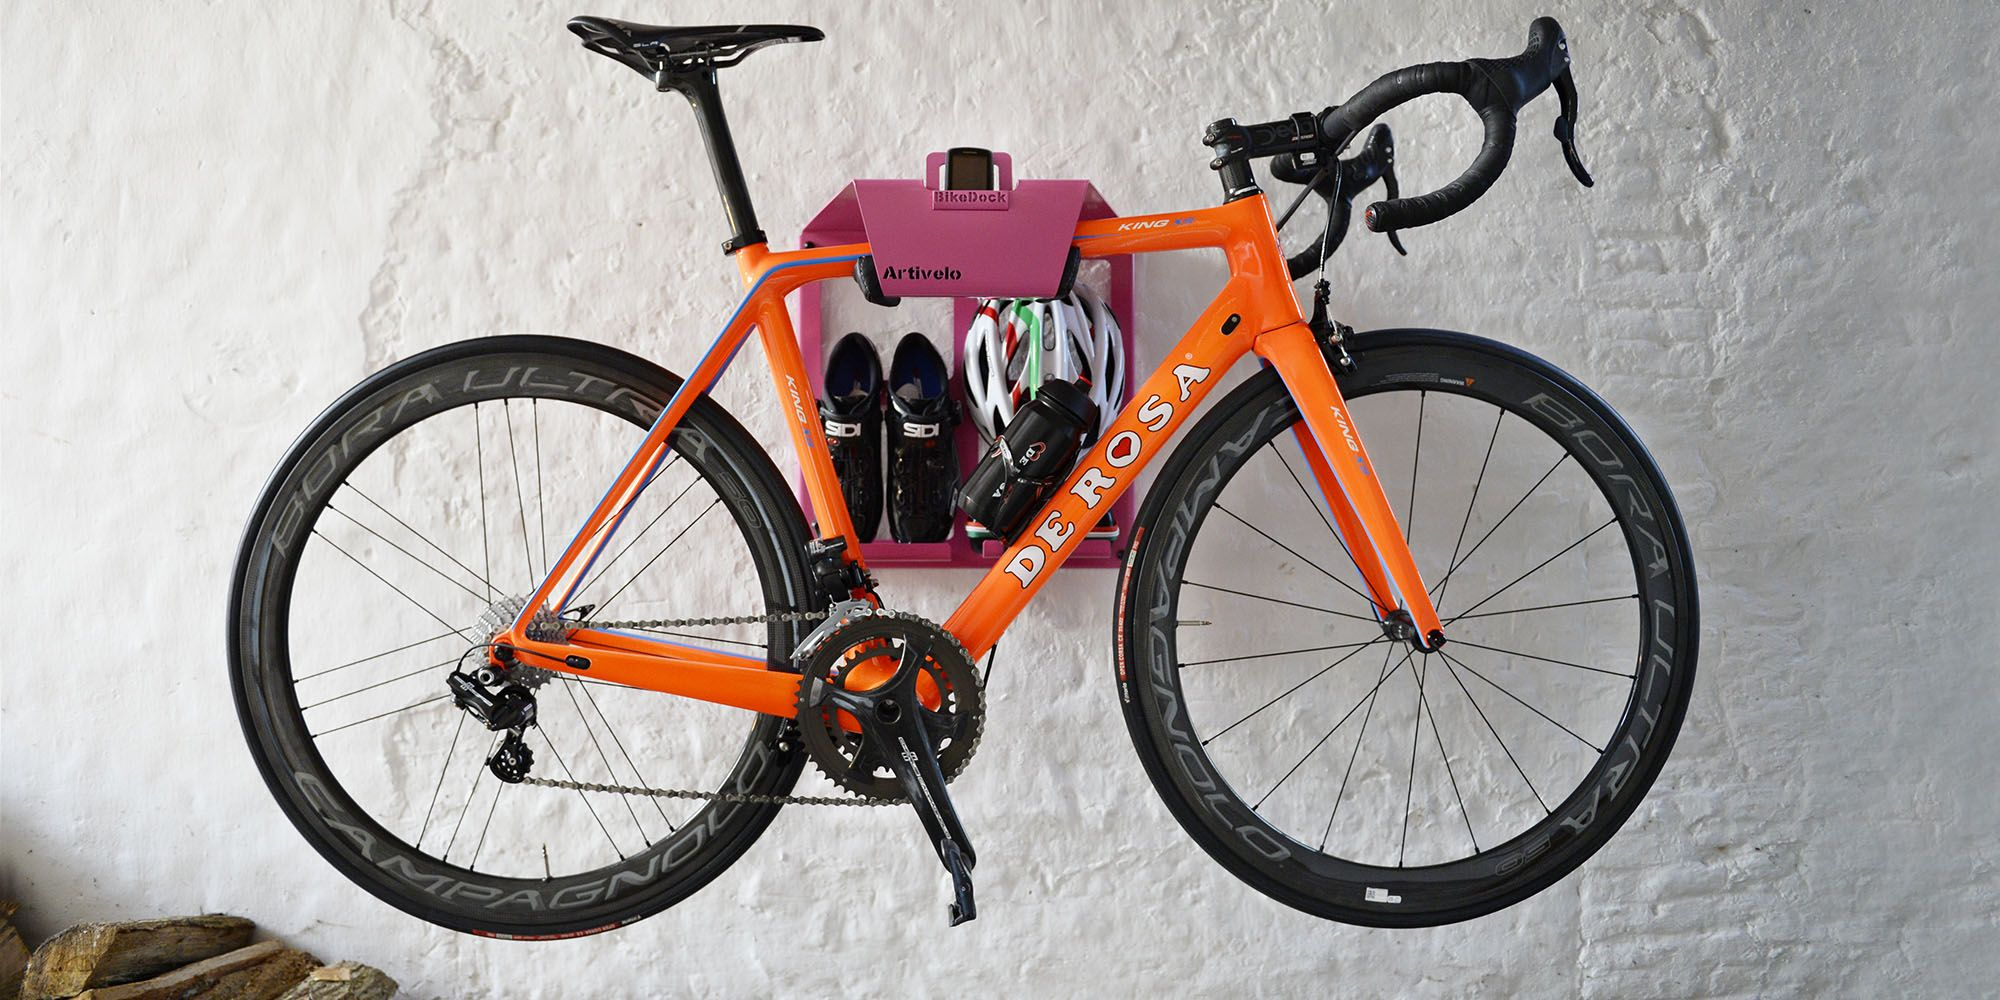 How To Hang Bike On Wall artivelo bikedock rosa looking bike wall mount bike rack bike